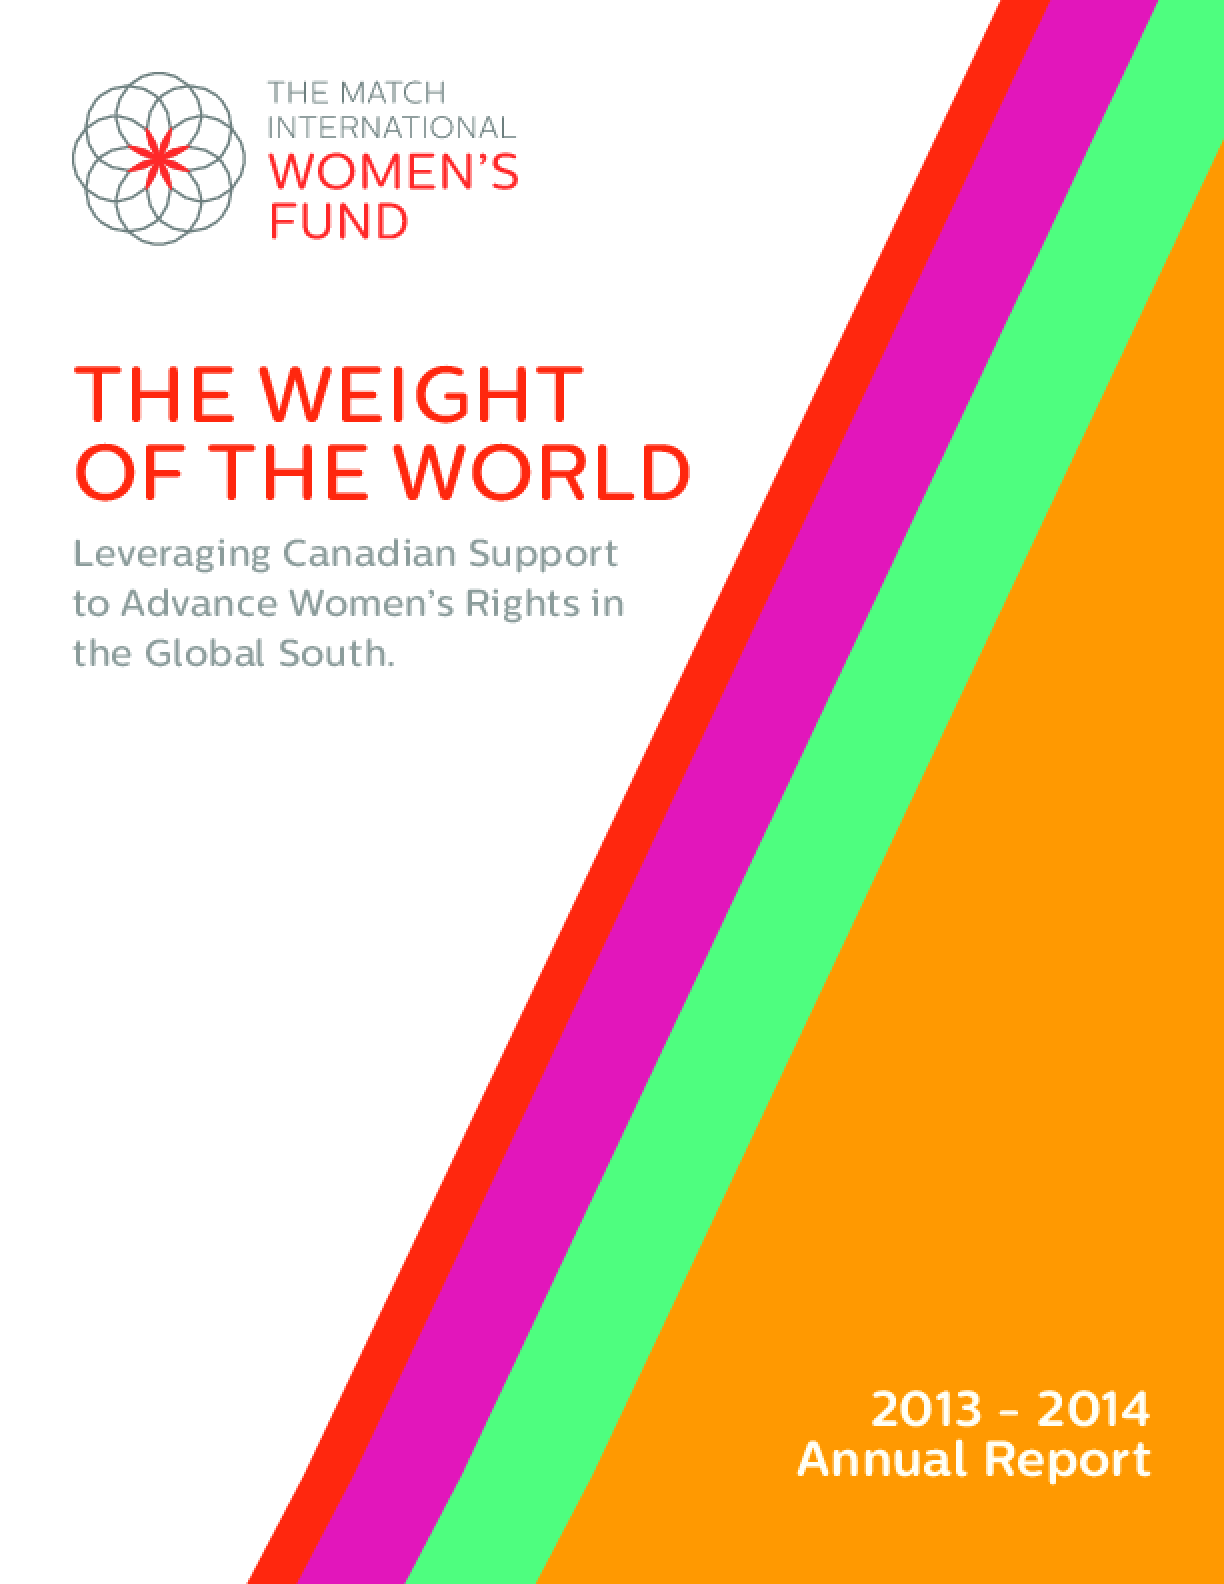 The Weight of the World: Leveraging Canadian Support to Advance Women's Rights in the Global South; 2013-2014 Annual Report